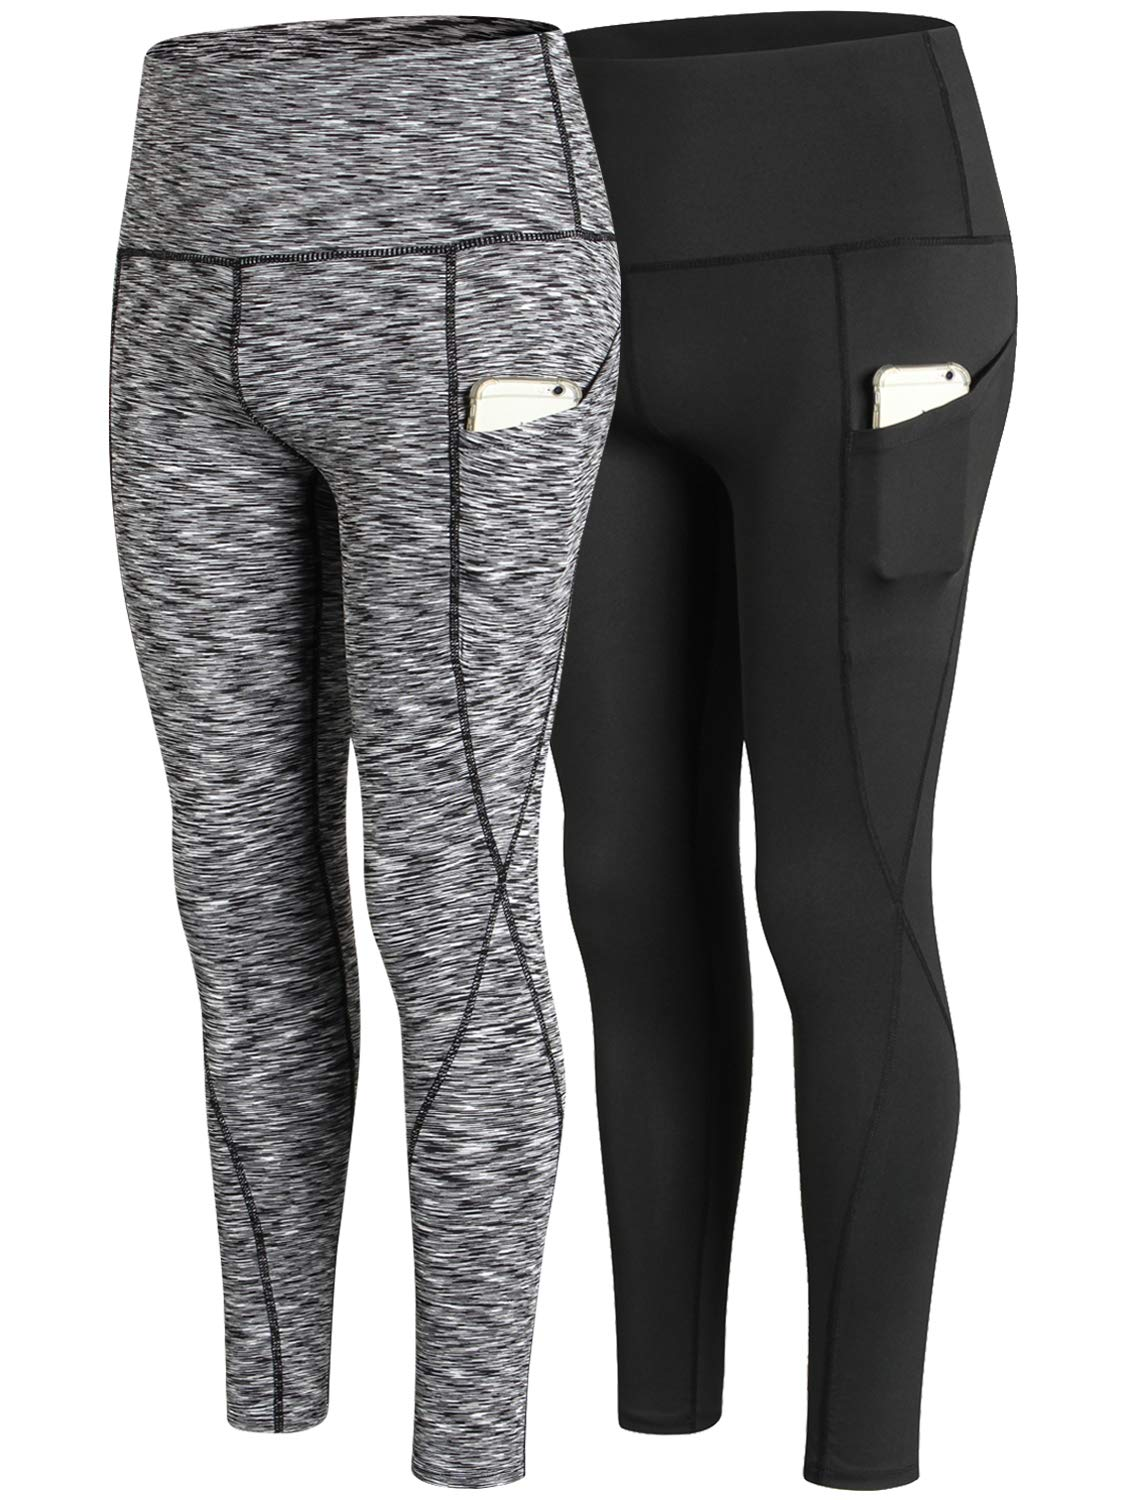 2 PackHigh Rise Pants Black Heather black Lavento Women's Compression Shorts Pocket Workout Running Tights